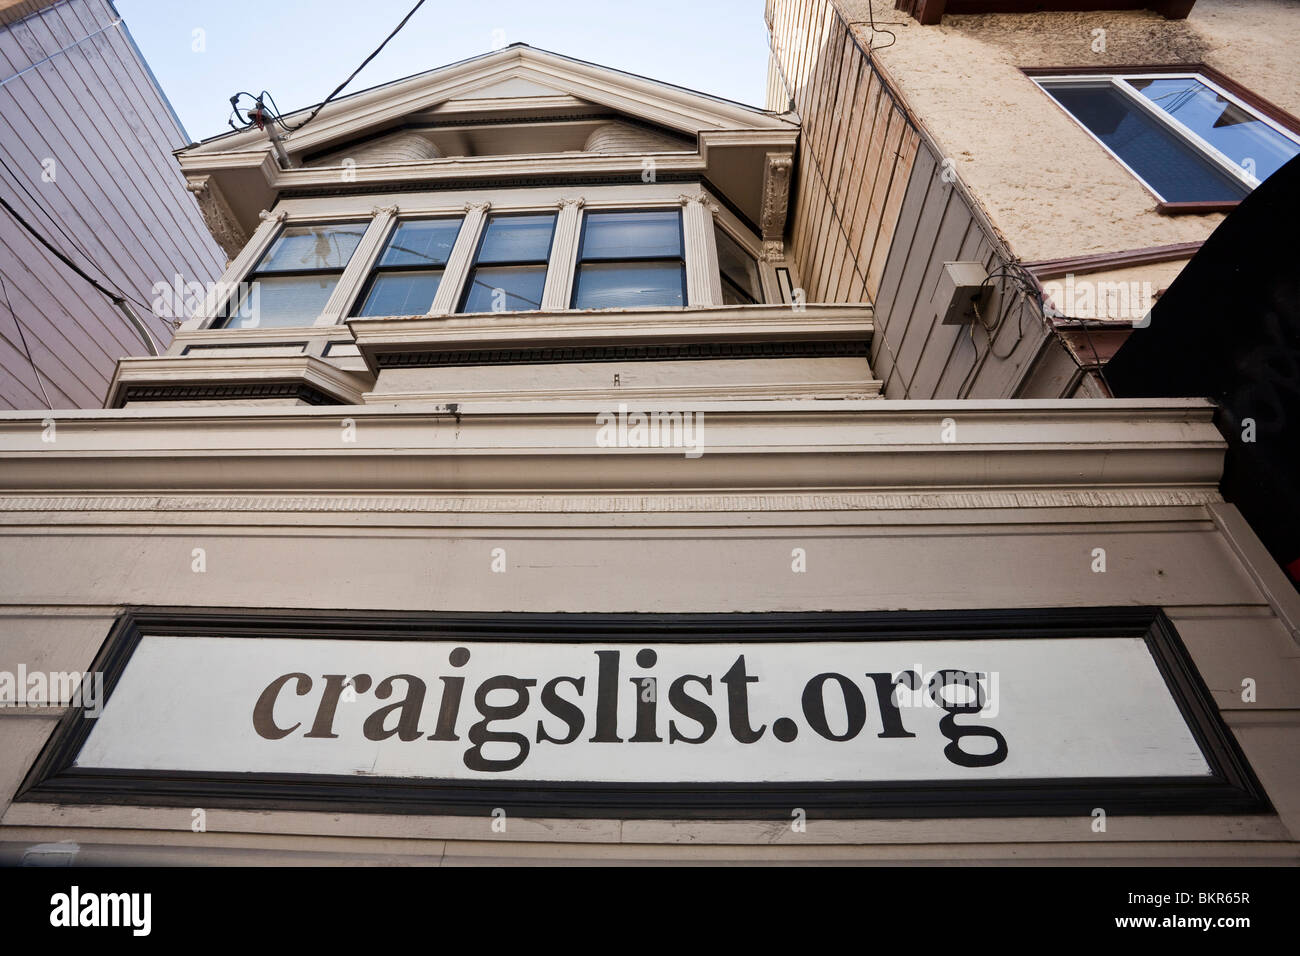 craigslist headquarters in victorian house in san francisco, usa